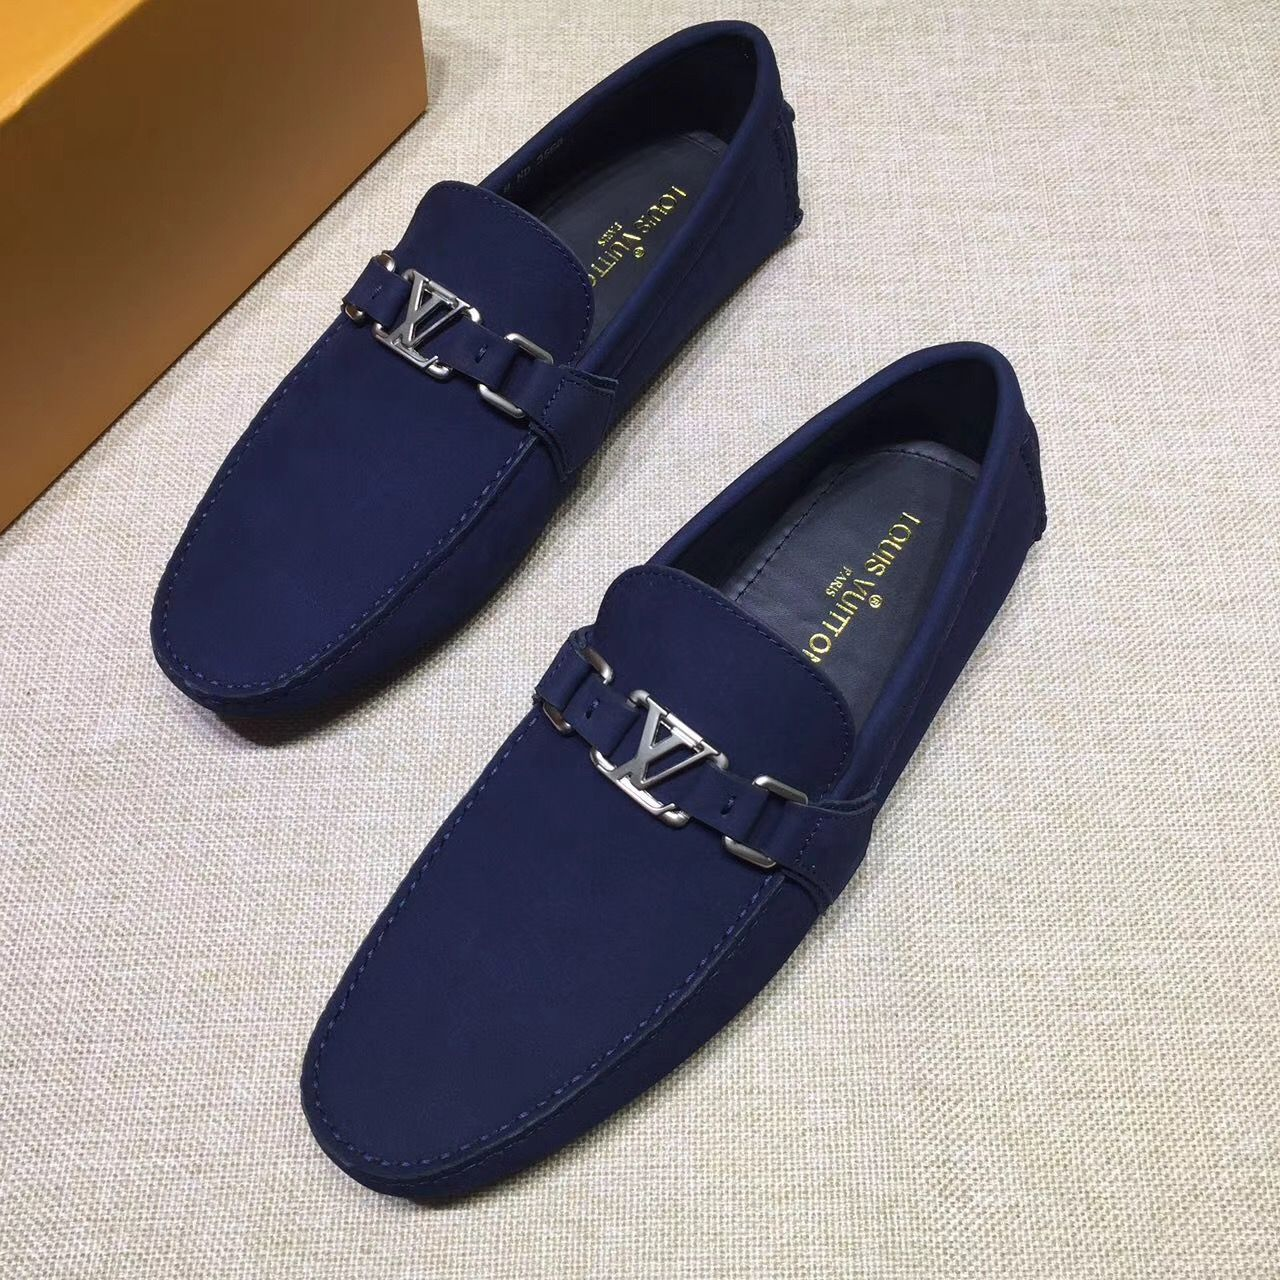 4b15c6c60a7e Louis Vuitton lv man shoes leather loafers